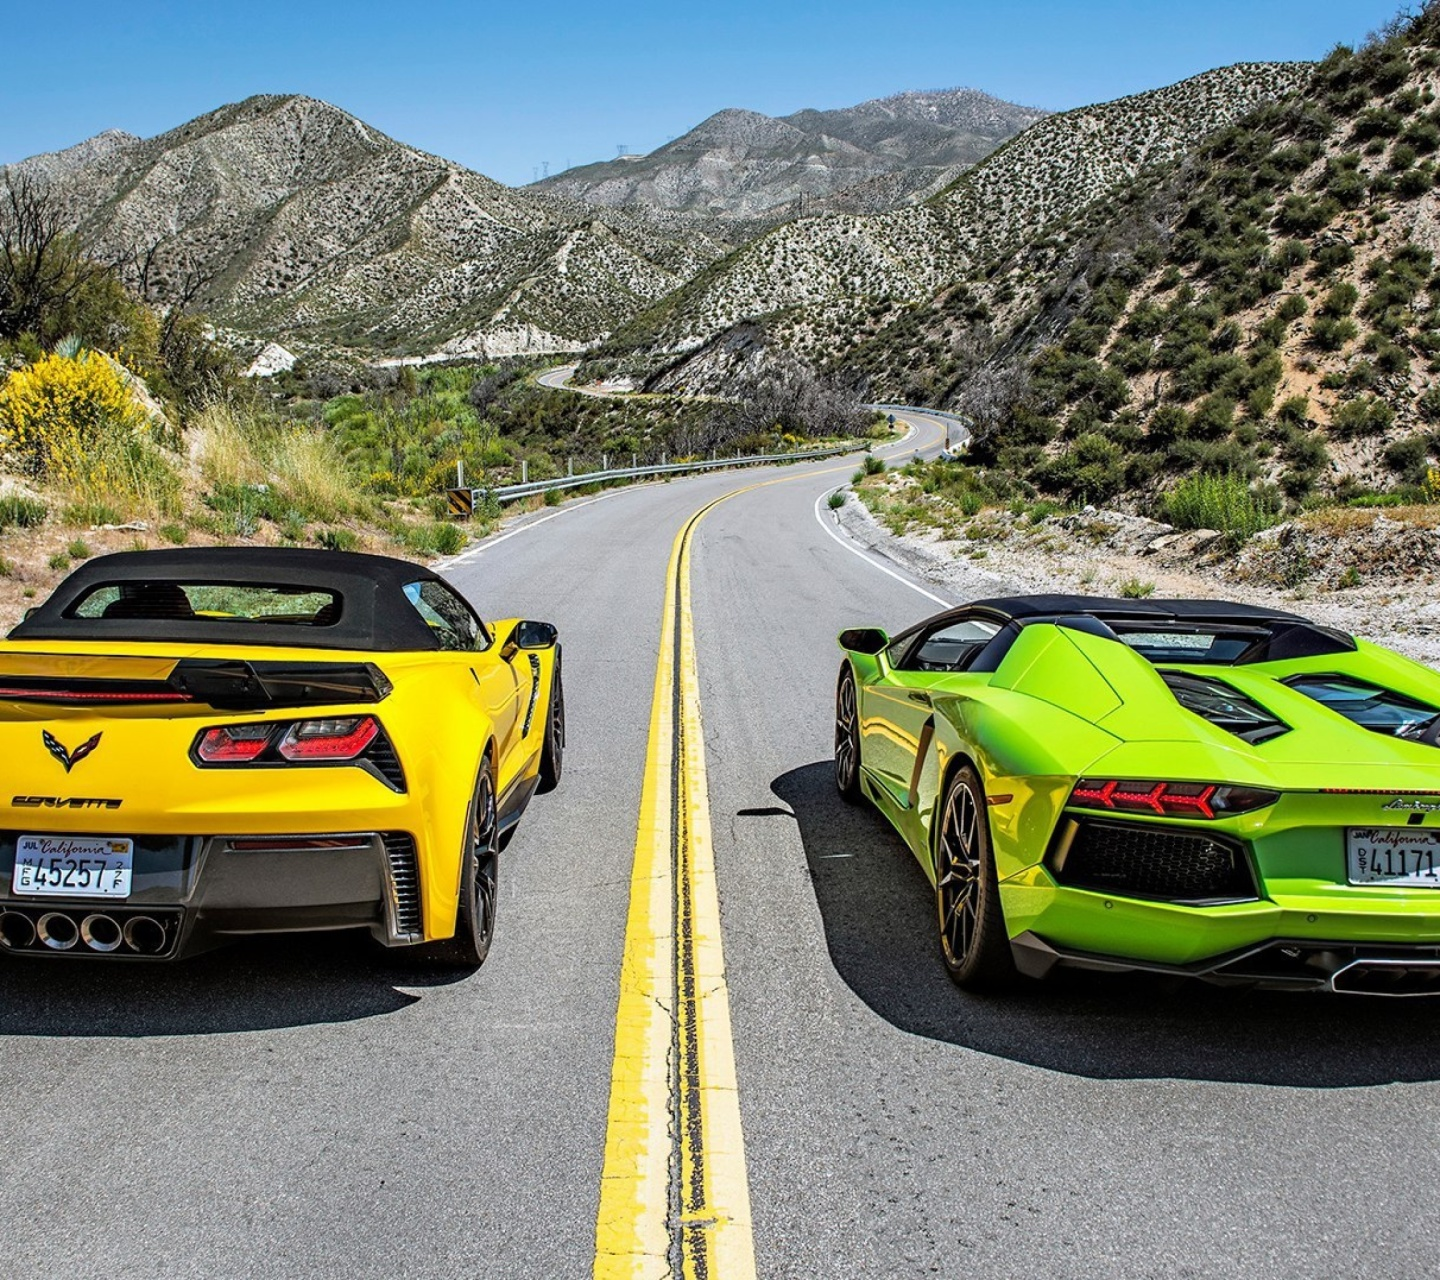 Chevrolet Corvette Stingray vs Lamborghini Aventador wallpaper 1440x1280